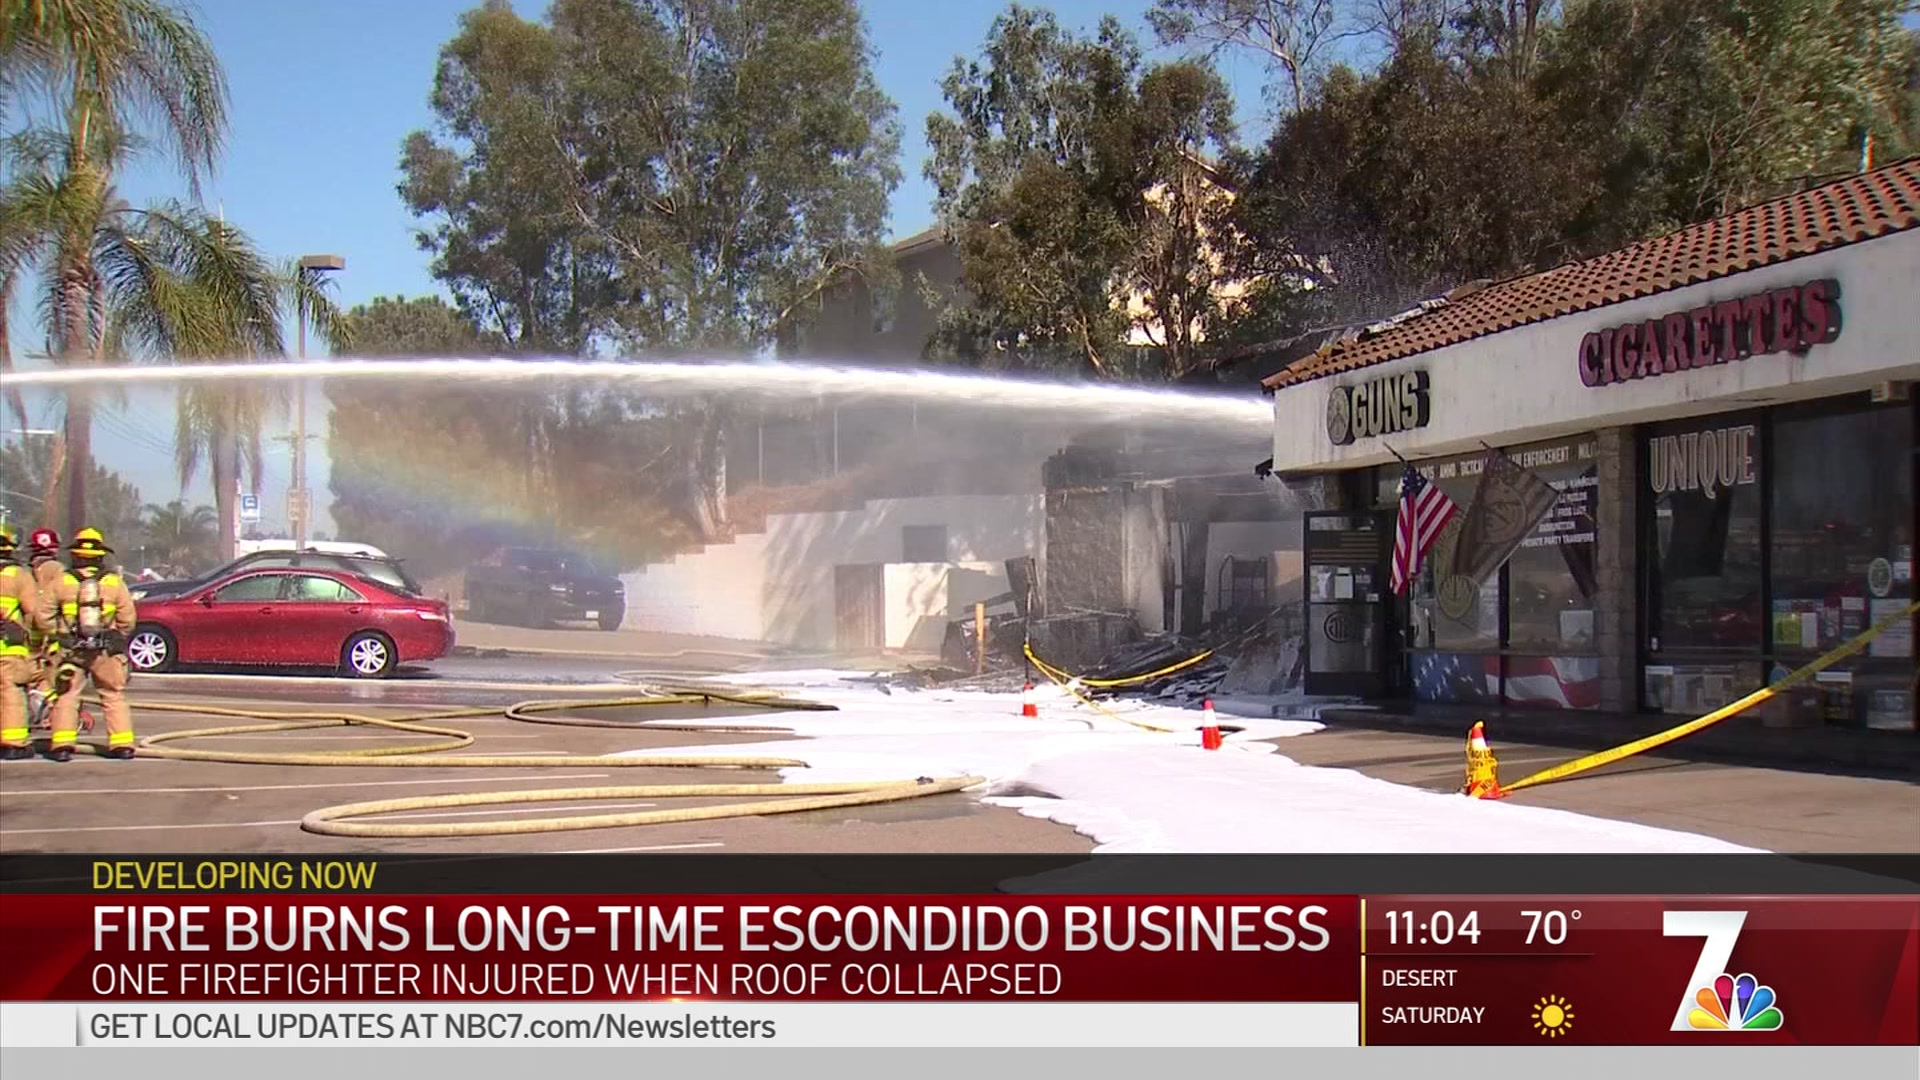 Random Sparks Lead to Fire at Escondido Dry Cleaning Shop